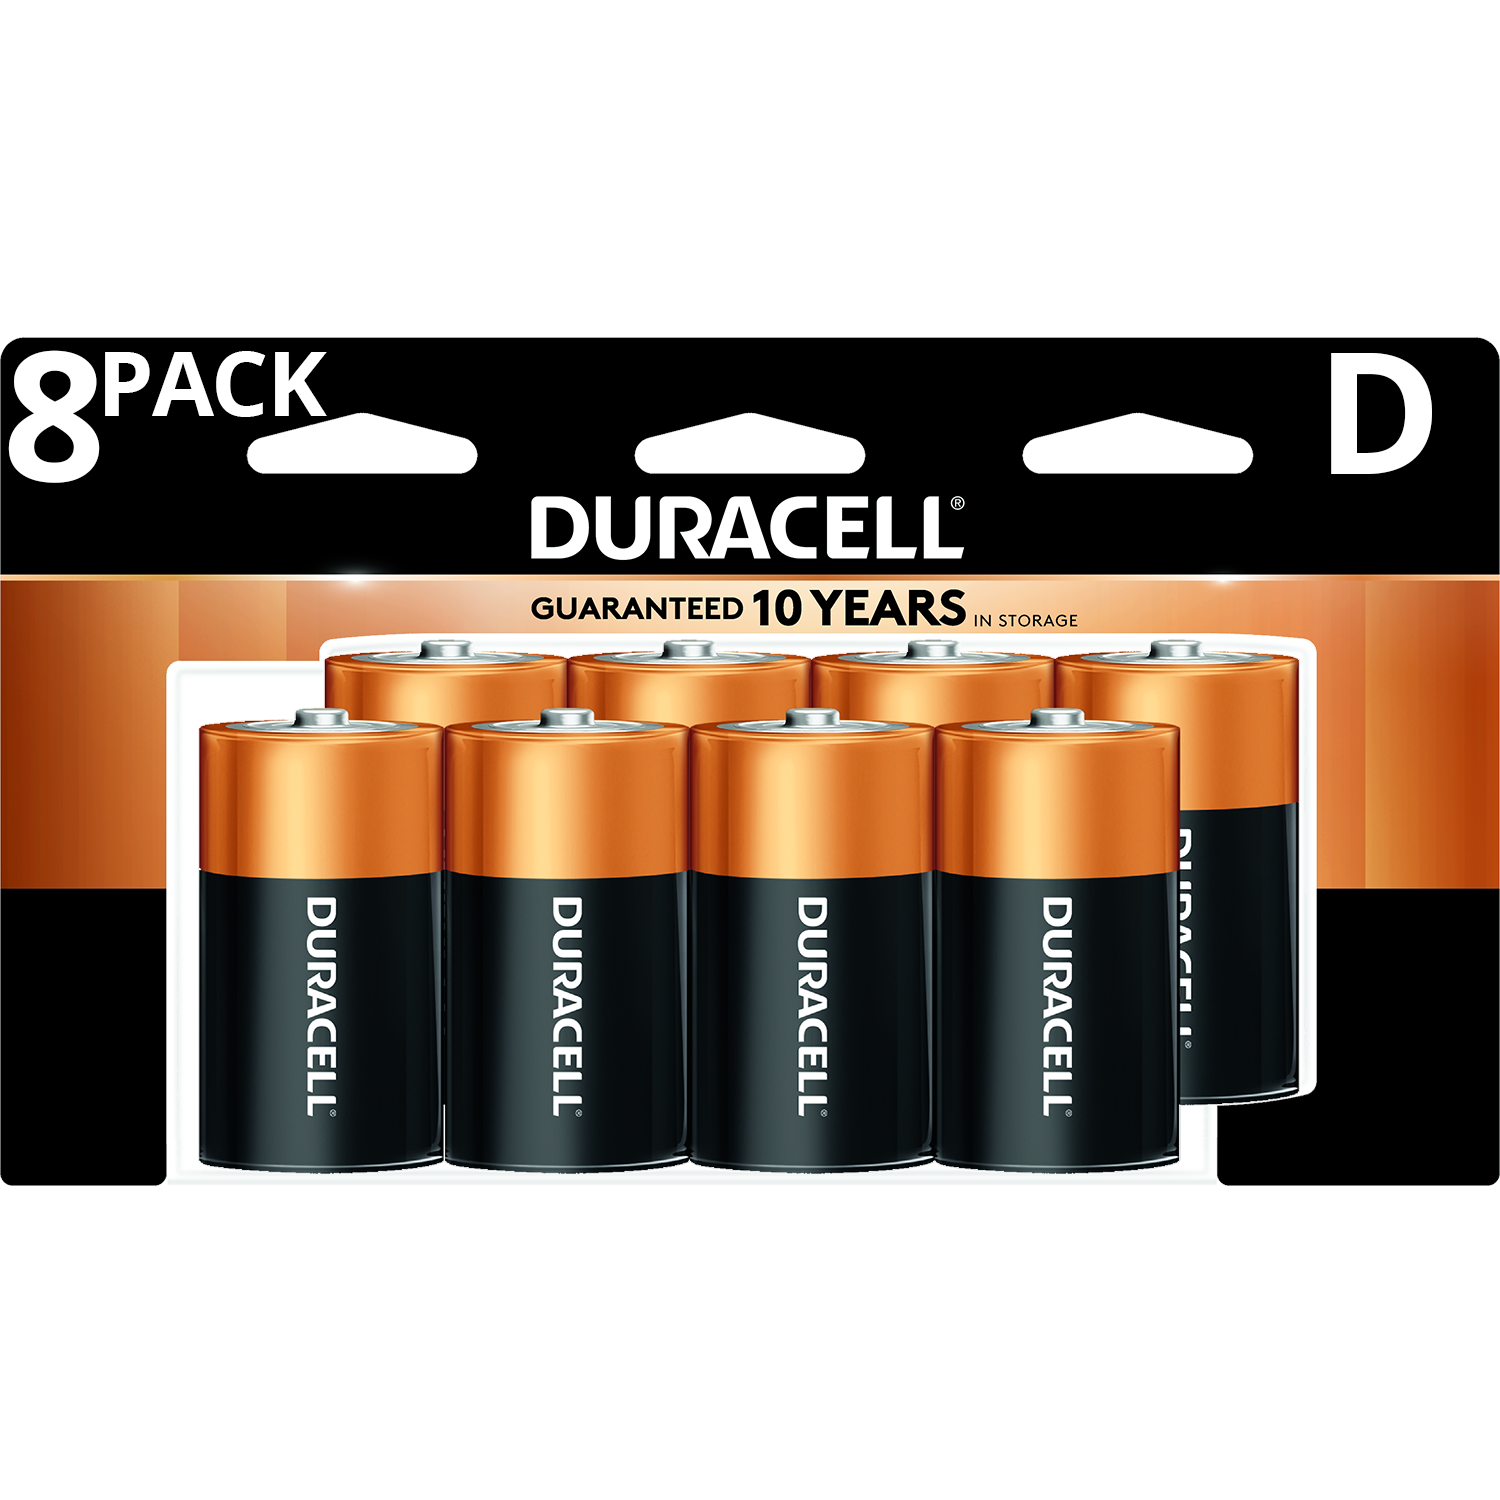 all-purpose C battery for household and business long lasting Pack of 12 CopperTop C Alkaline Batteries with recloseable package Duracell